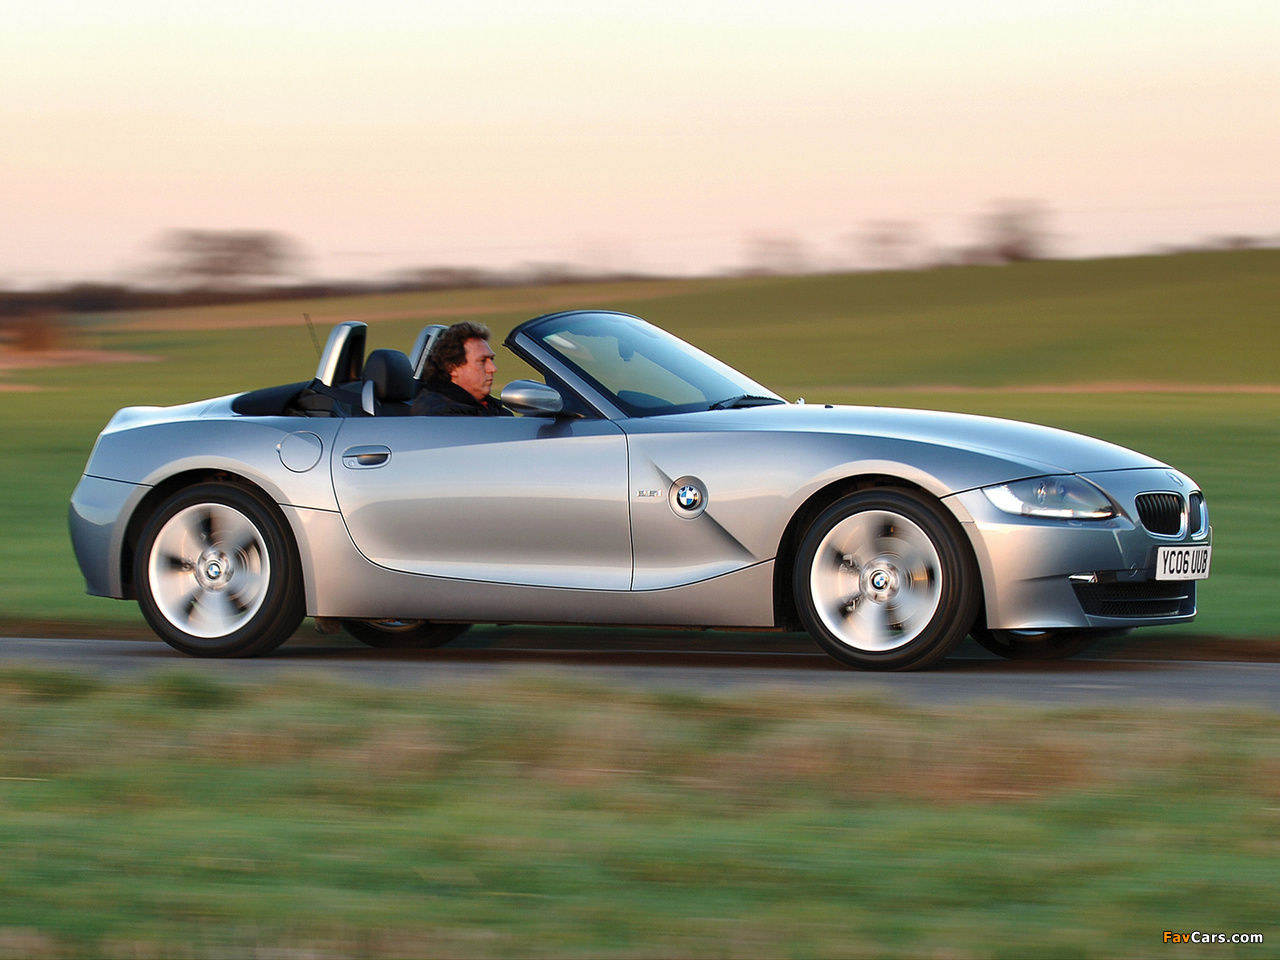 Bmw Z4 2 5i Roadster Uk Spec E85 2005 09 Pictures 1280x960